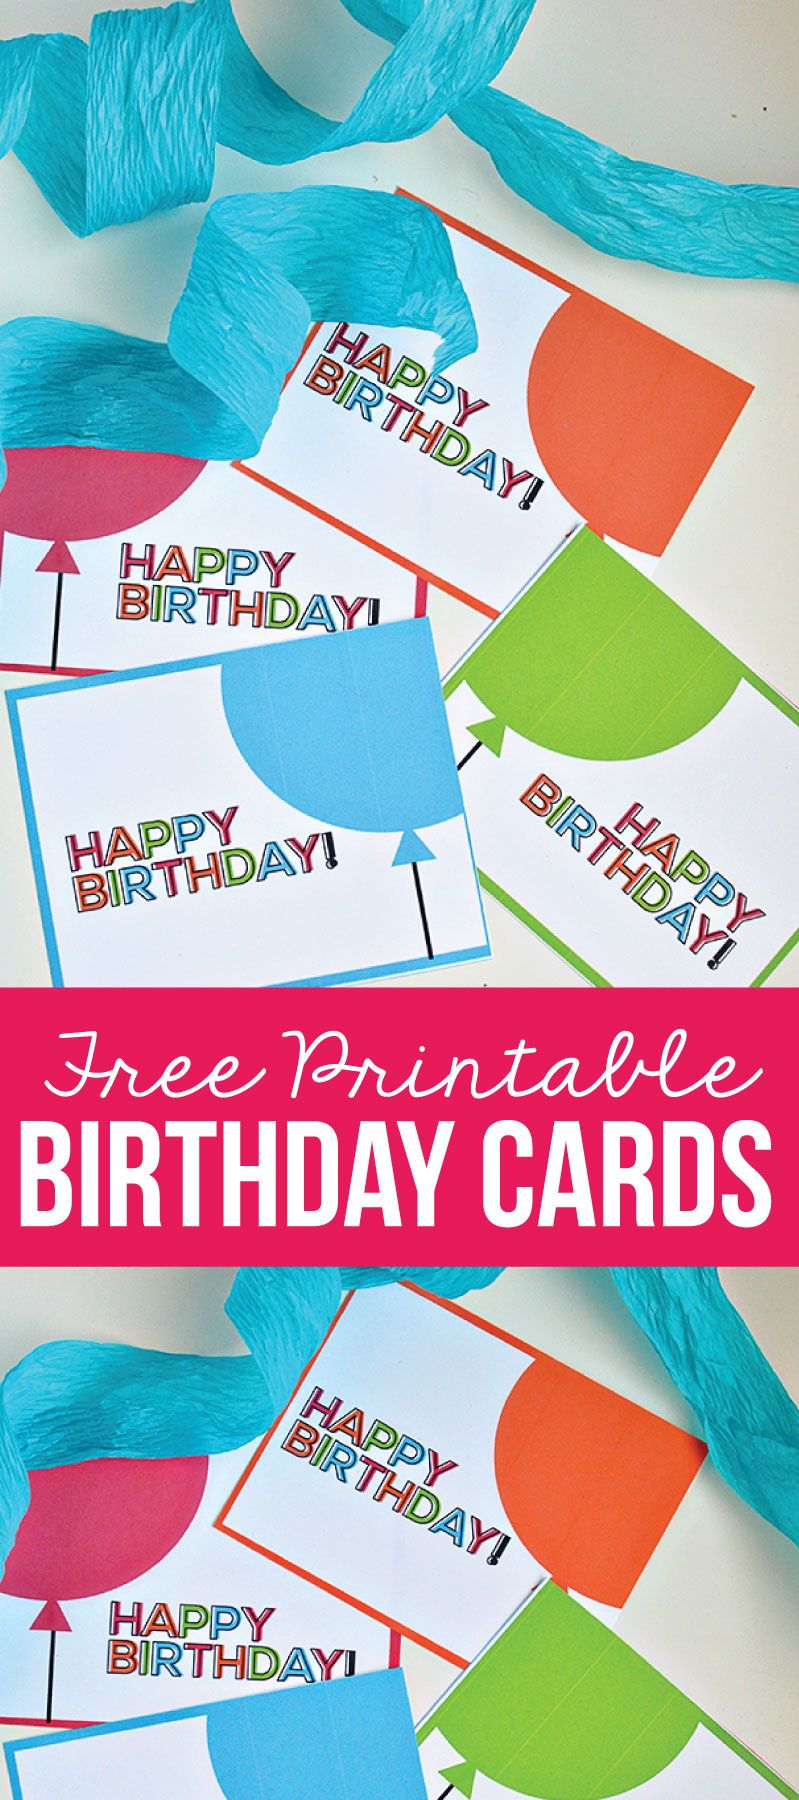 Printable birthday cards free printable birthday cards printable simple printable birthday cards and tags these are free print out birthday cards that you just print cut out sign and attach as simple as that kristyandbryce Image collections